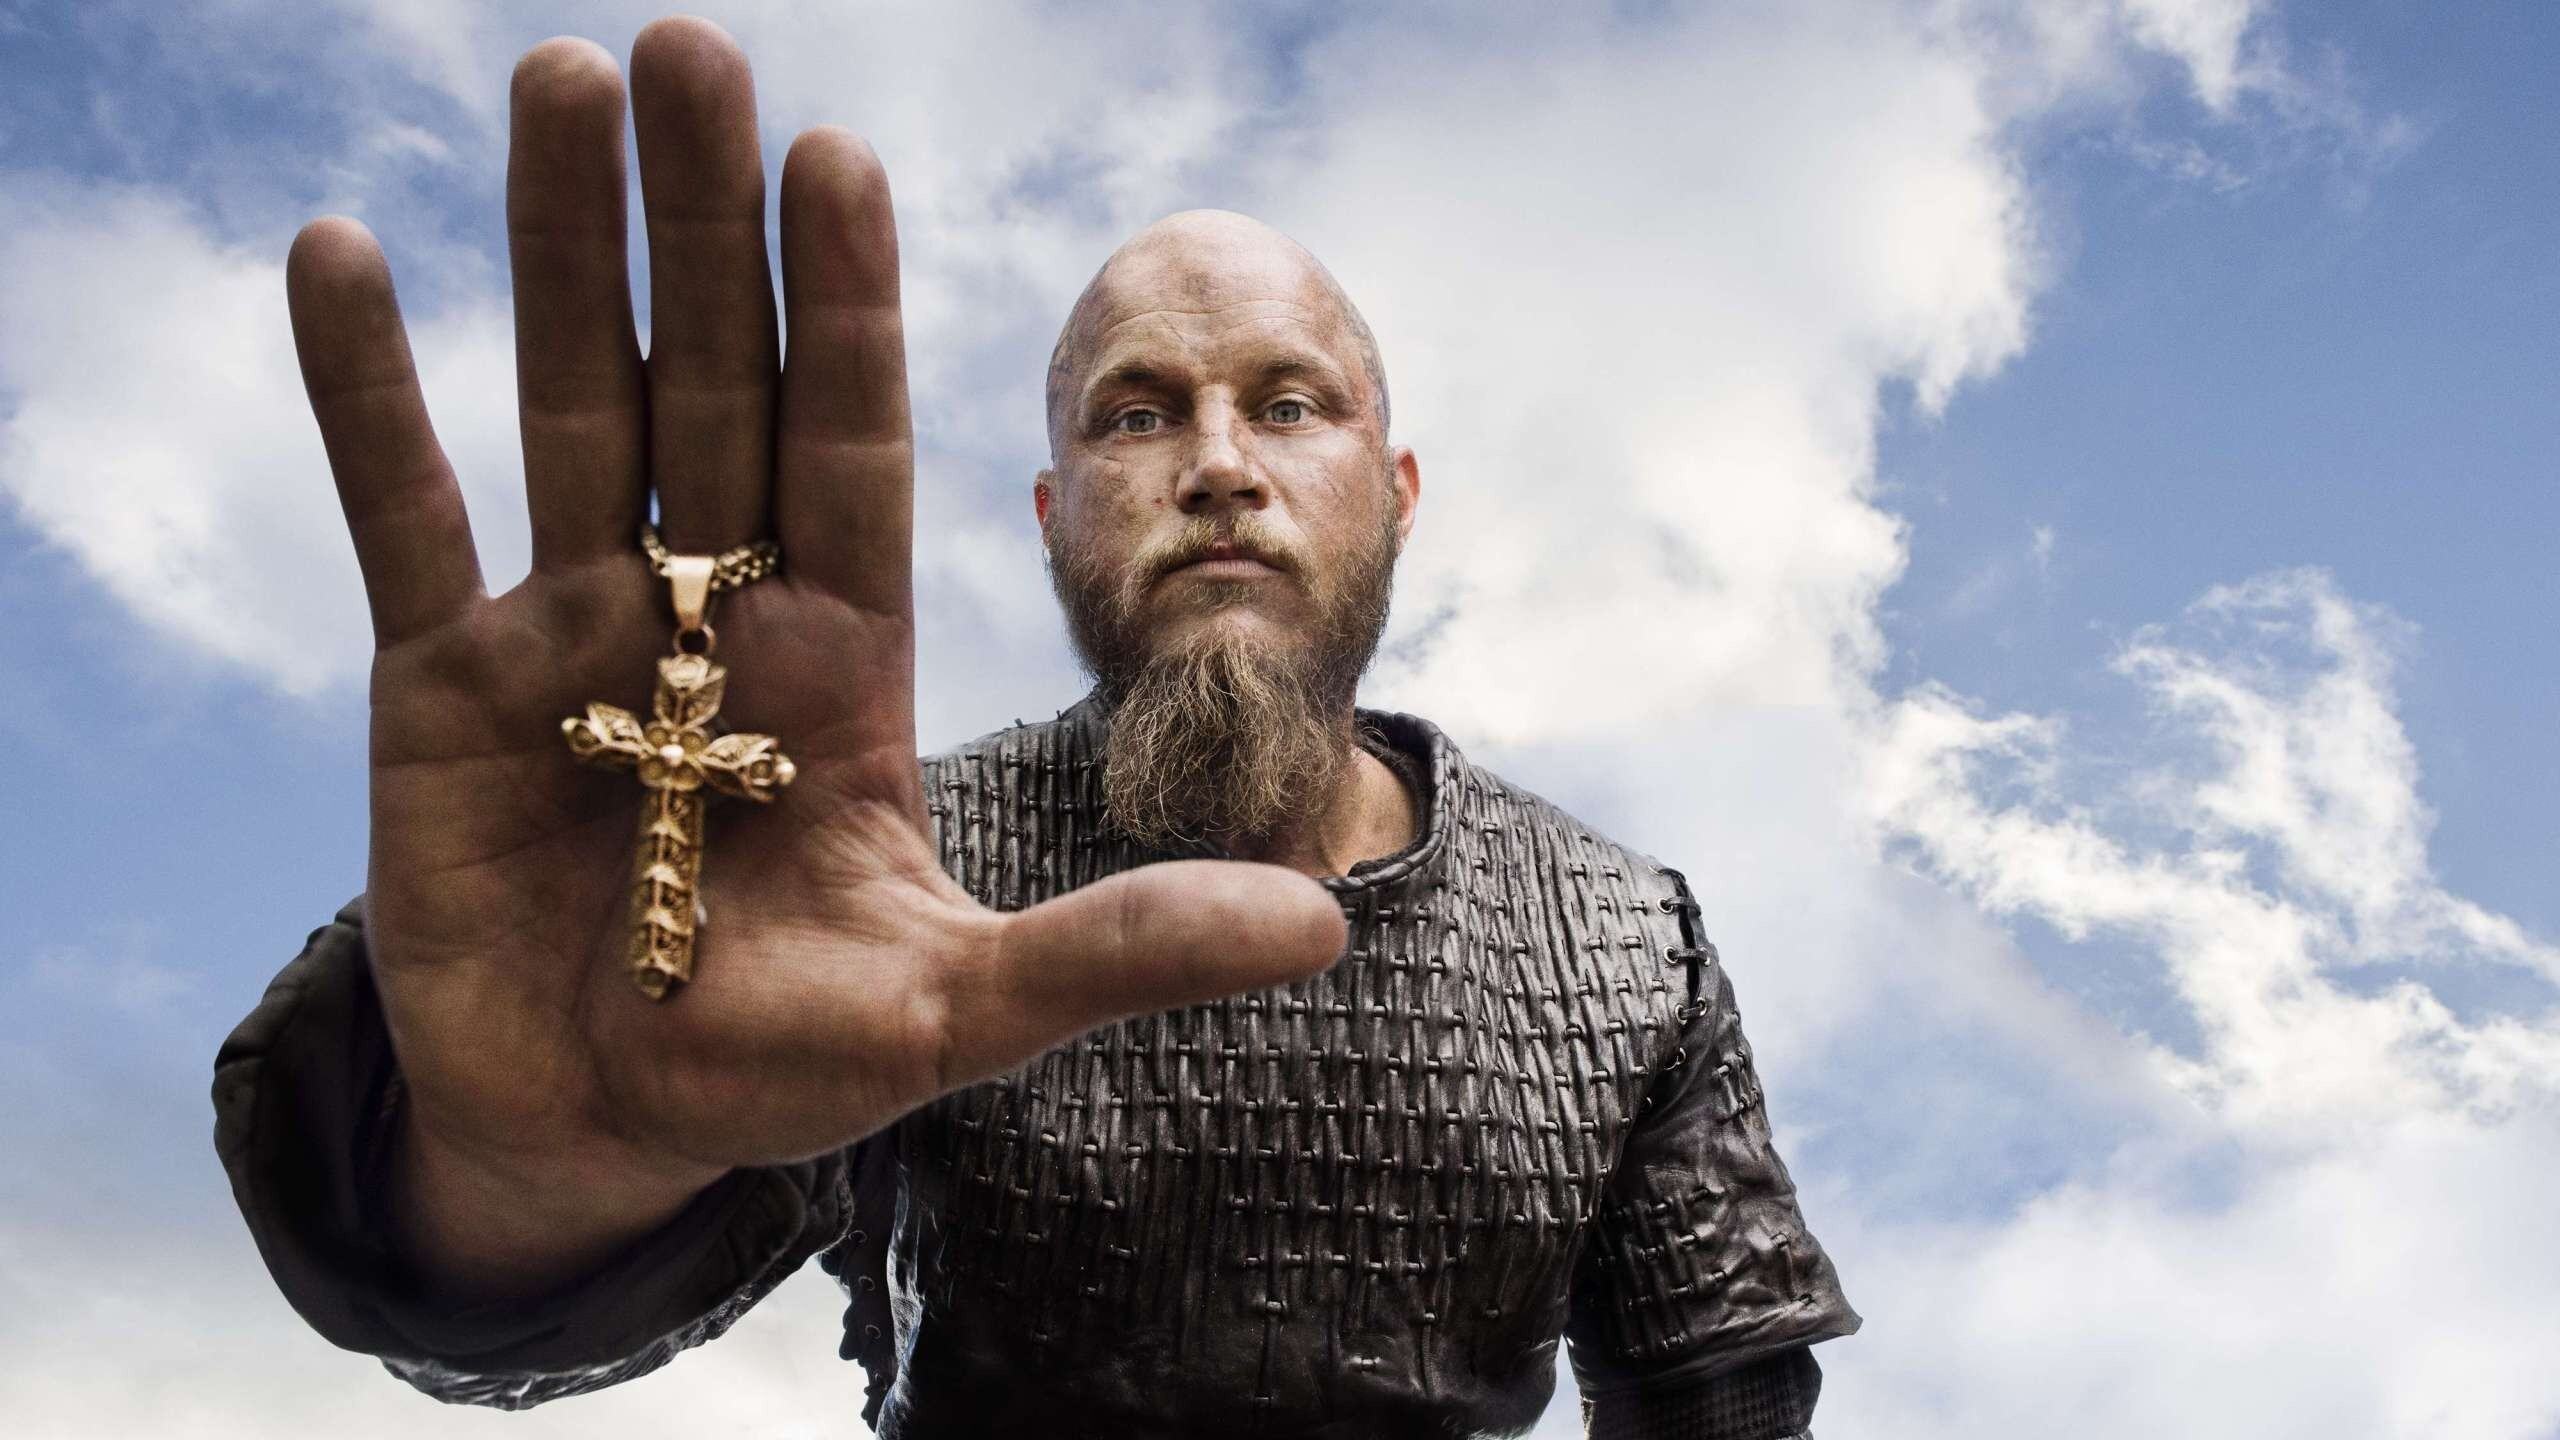 2560x1440 Ragnar Lodbrok In Vikings 1440P Resolution HD 4k Wallpapers, Images, Backgrounds ...